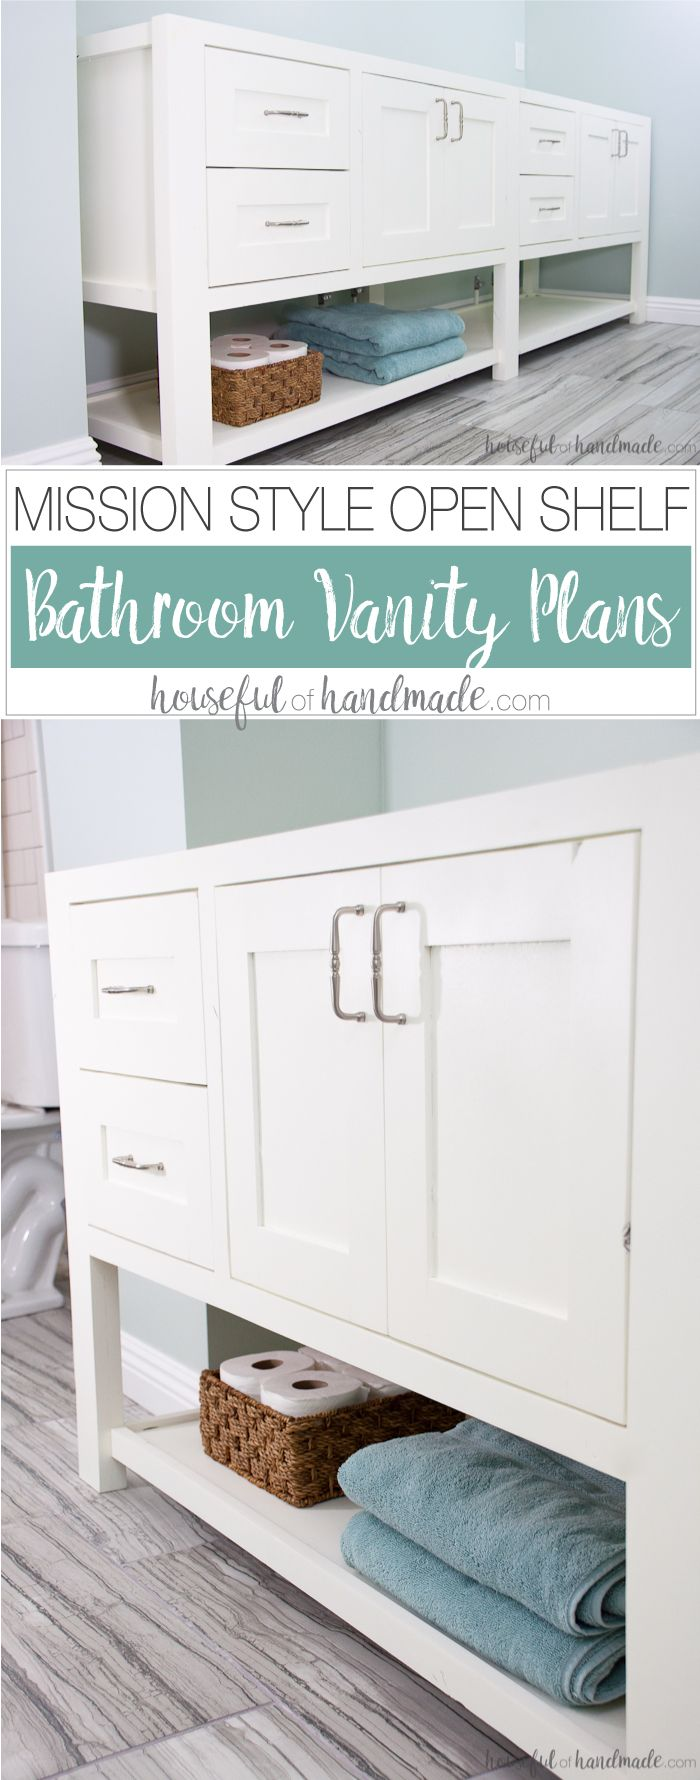 build bunch diy ideas bathroom the decoration solutions floating of gallery country modern bath own plans collection your vanity